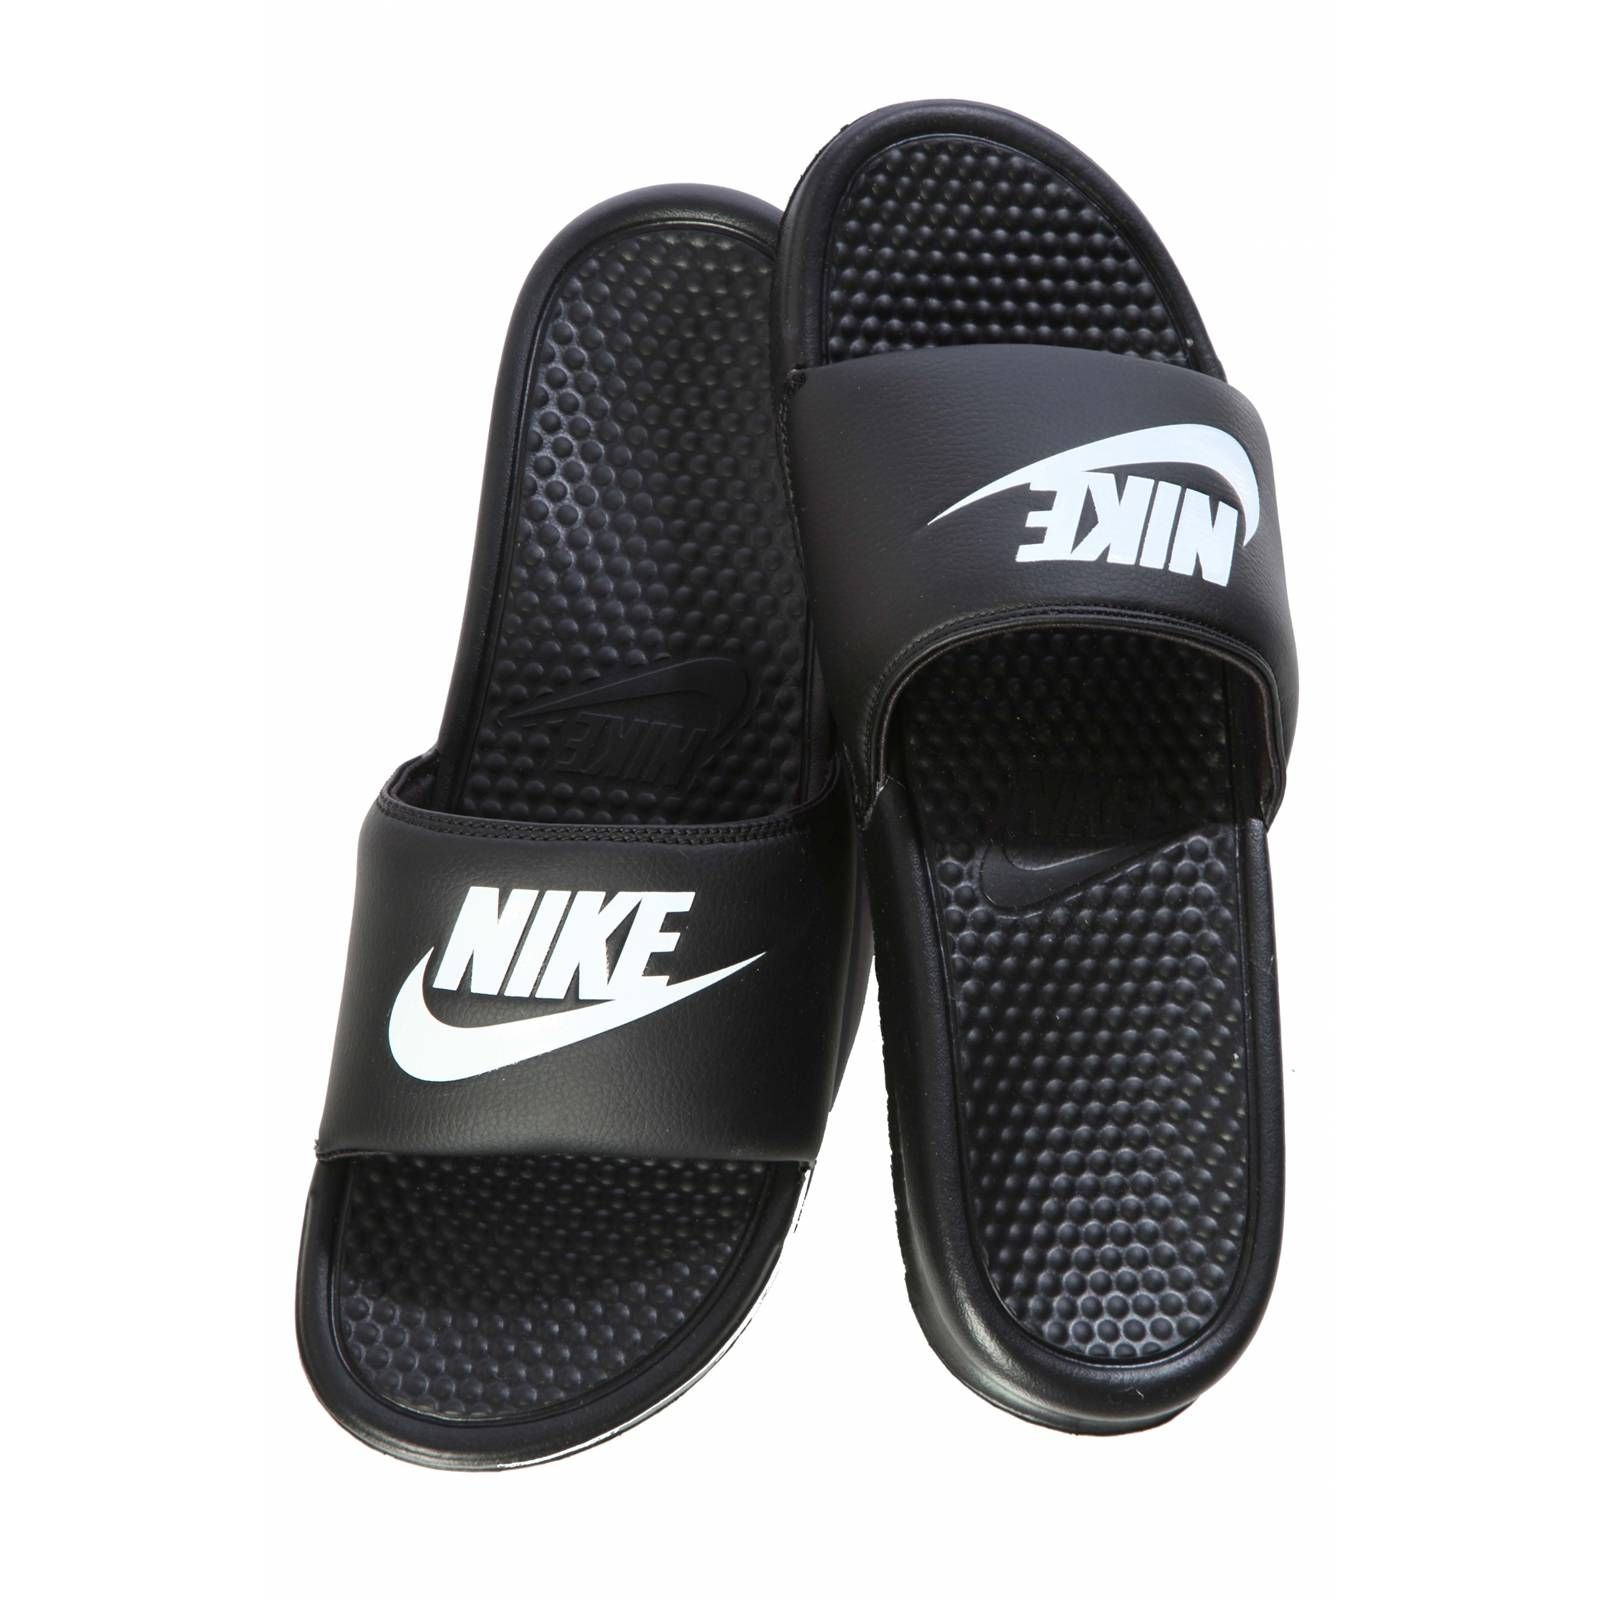 dbf239be2a5 Buy nike flip flop sandals   OFF33% Discounted